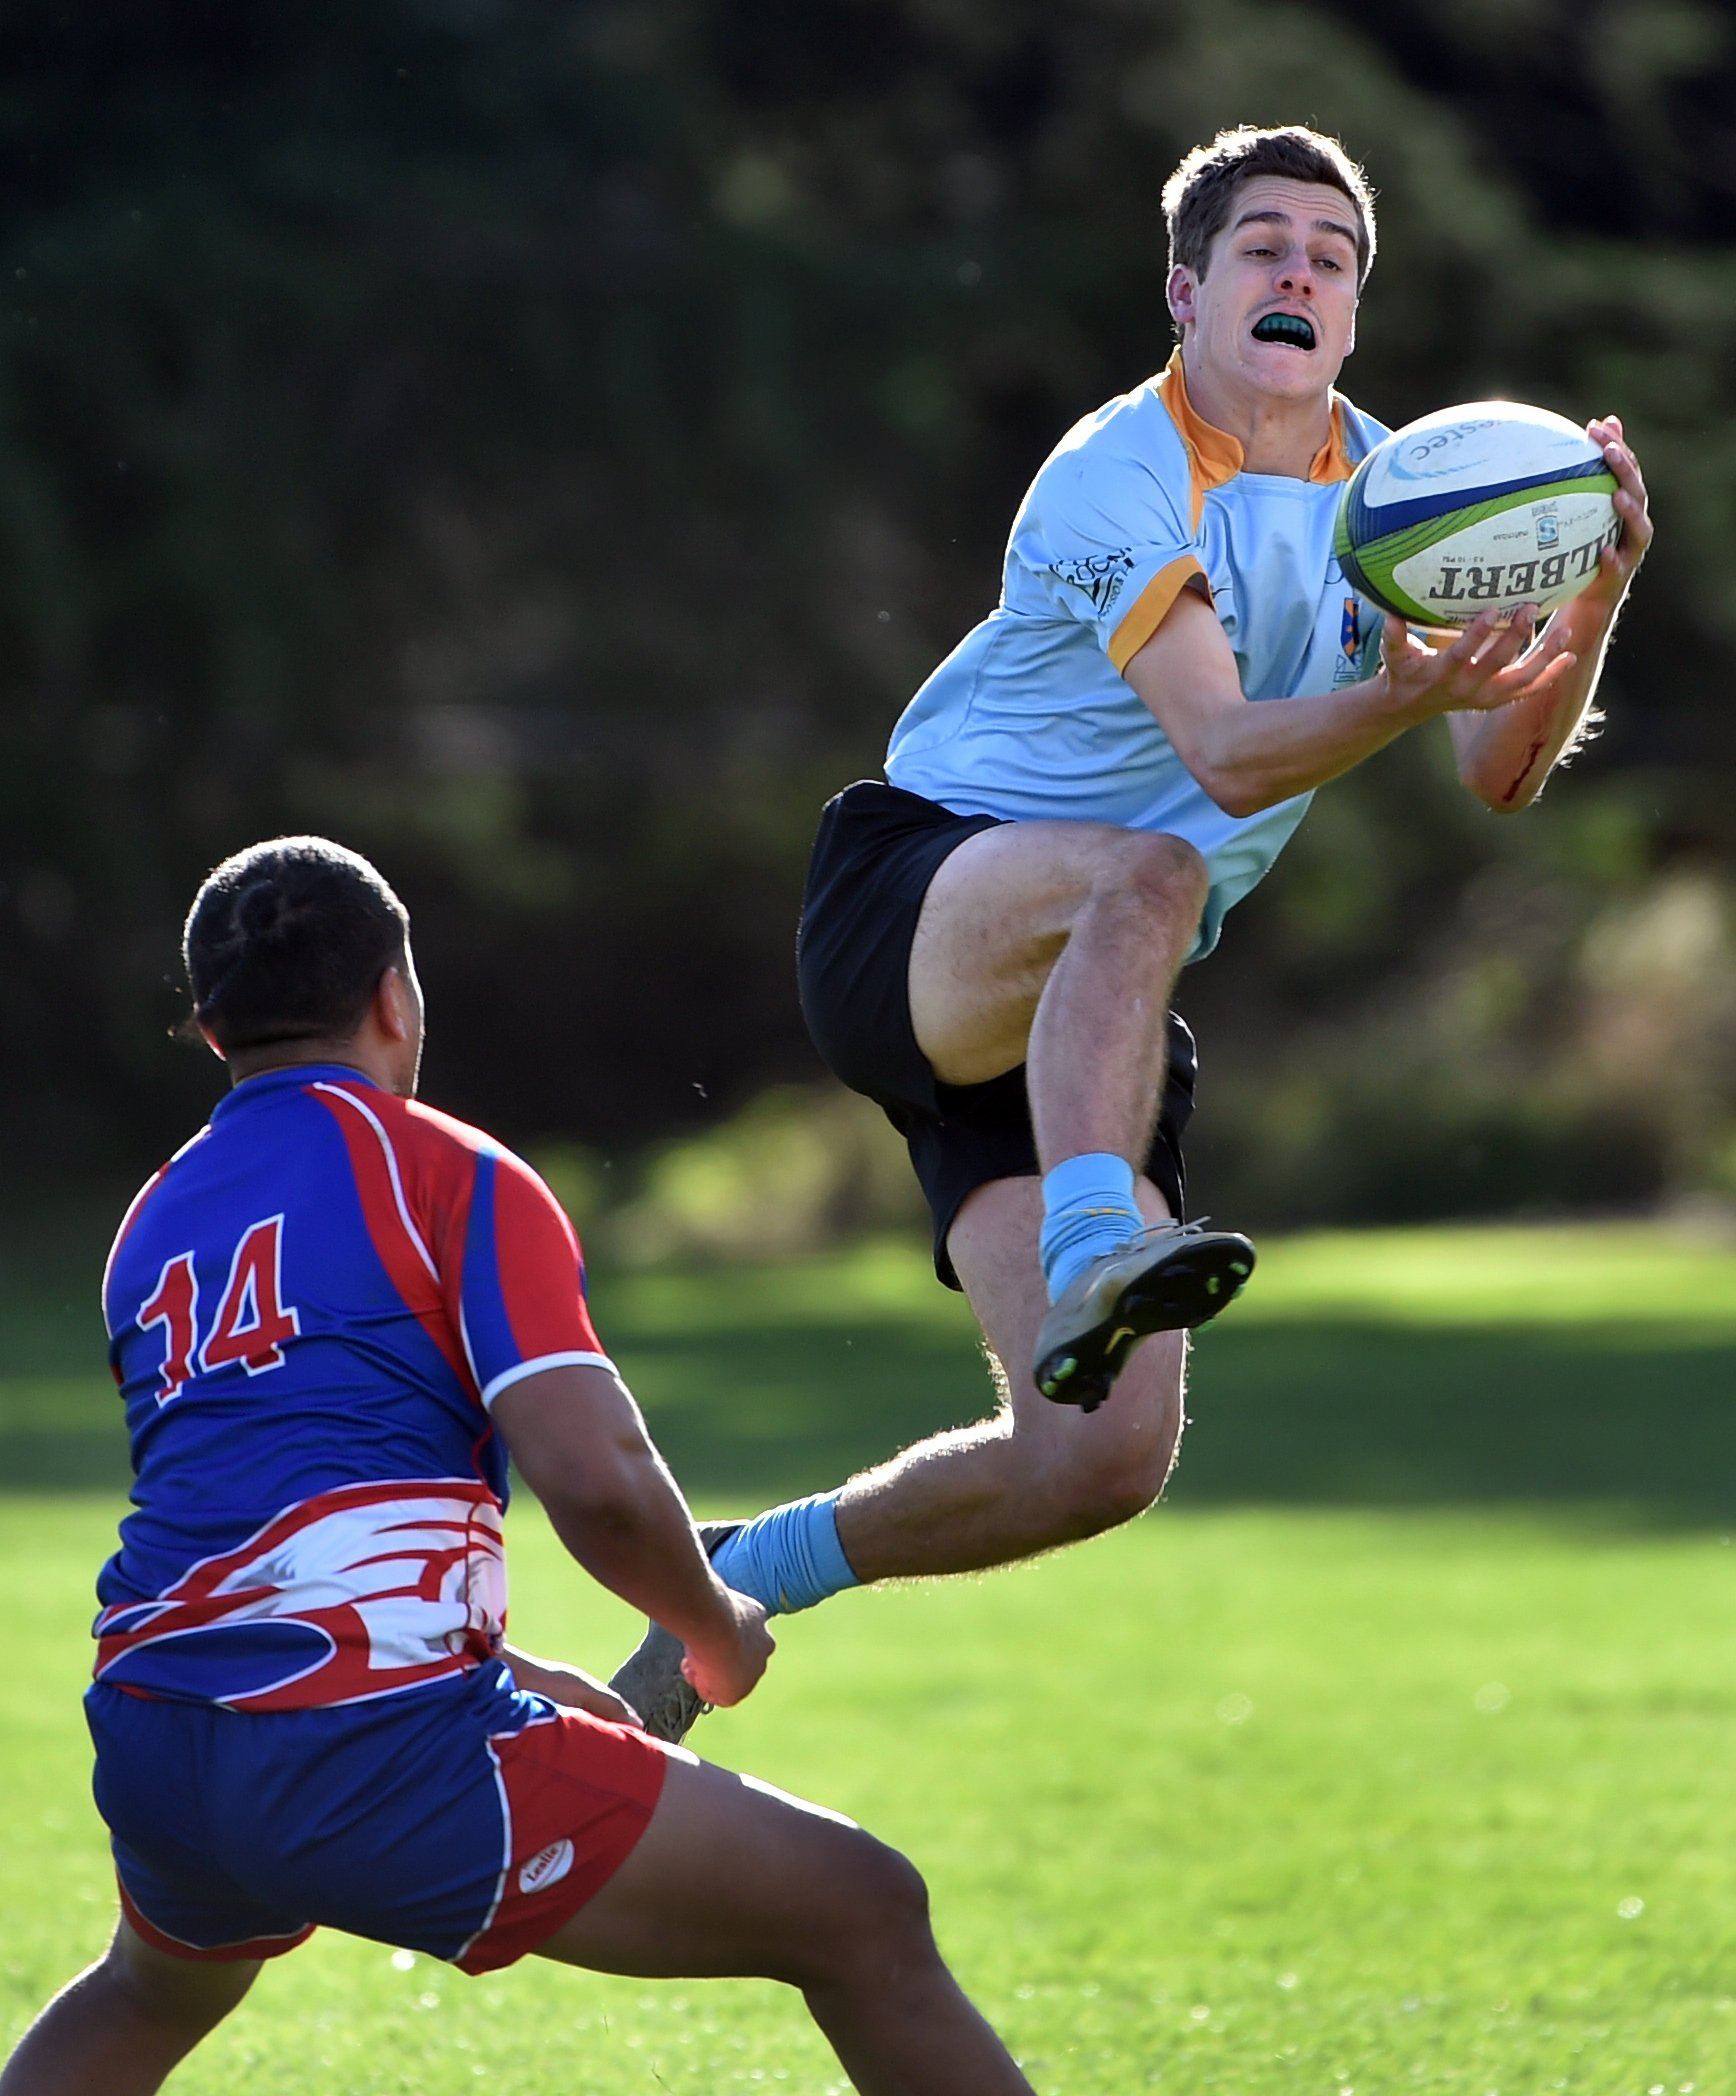 University winger Cam Gerlach catches the ball while Harbour winger Ngana Nicholas looks to...